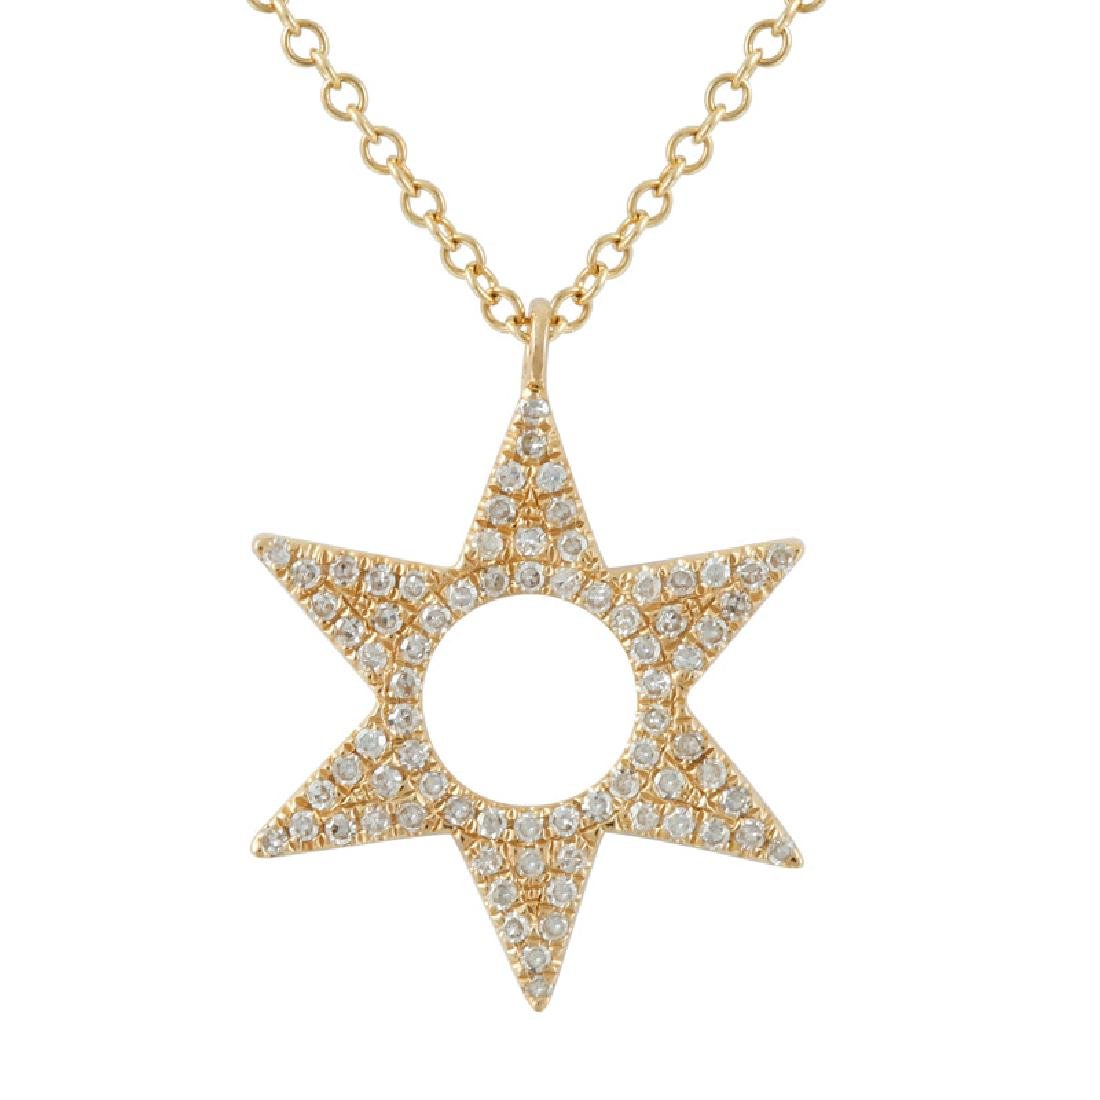 14KT Yellow Gold Diamond Necklace - 2